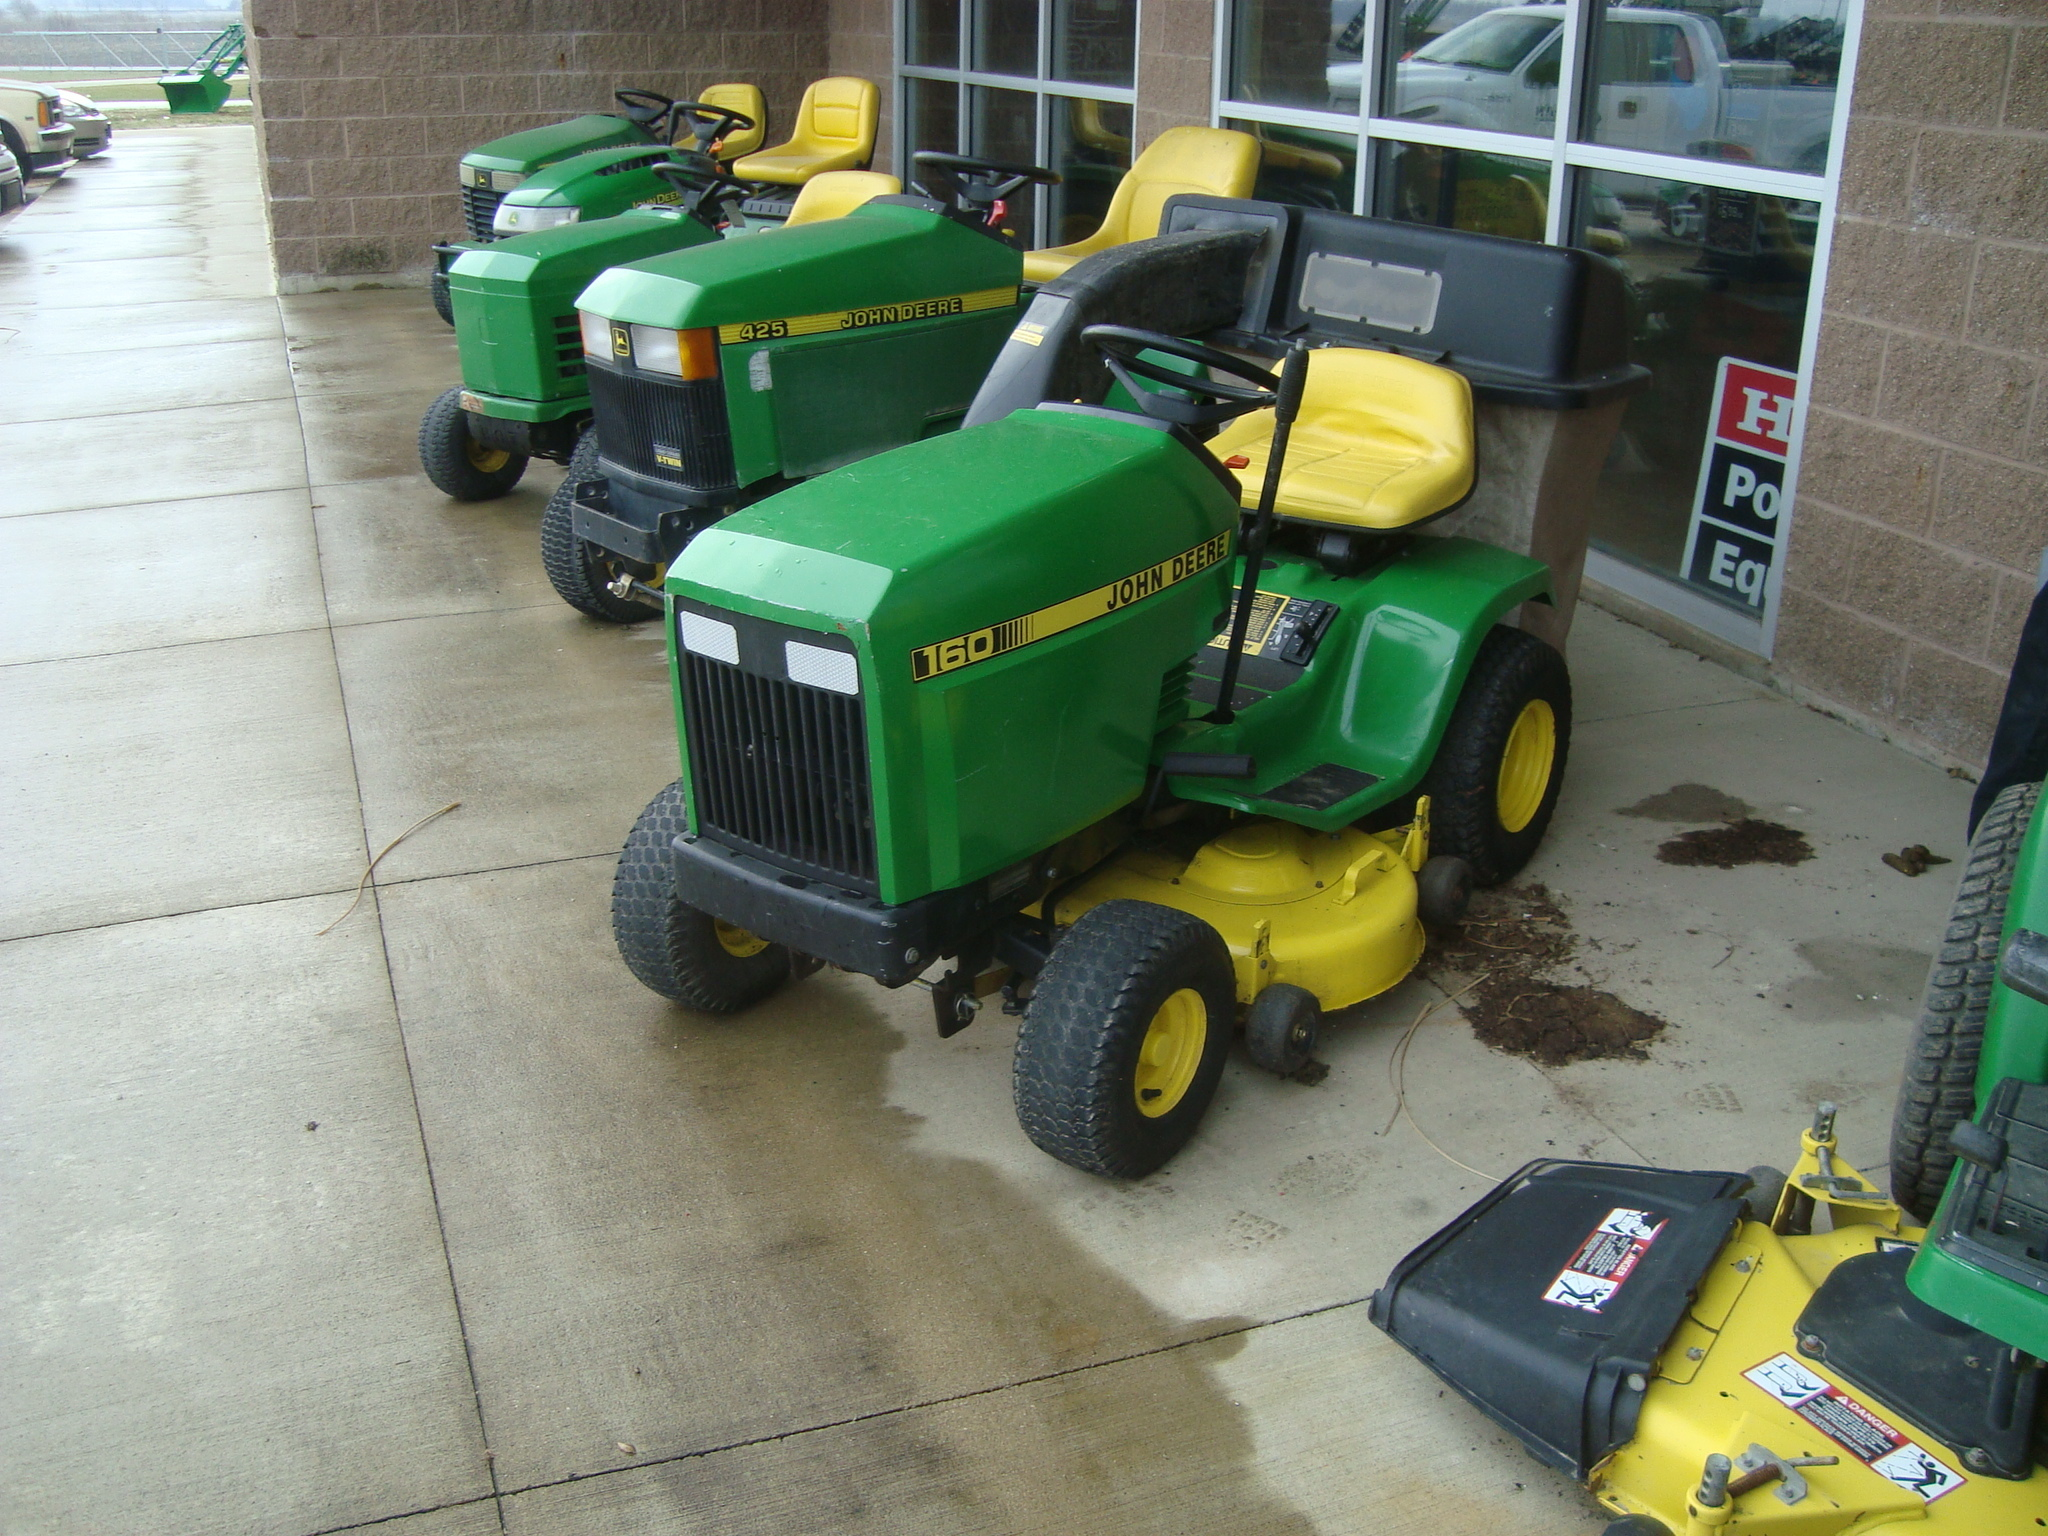 John deere 160 lawn garden tractors for sale 40448 for Garden machinery for sale